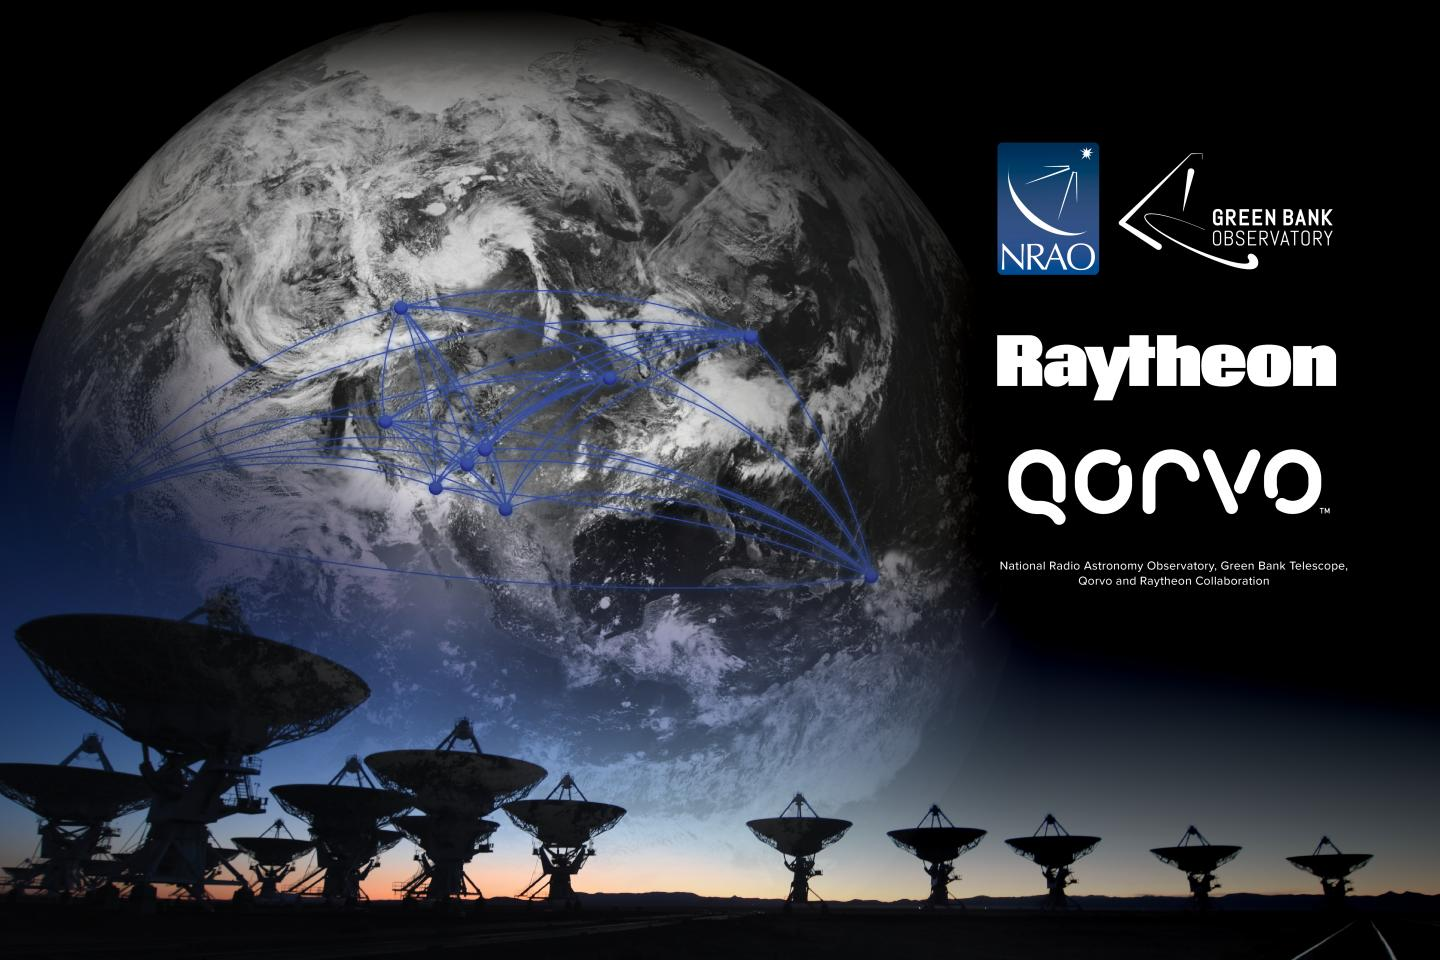 Qorvo Spatium technology to make identifying, tracking, and mapping NEOs a precision project